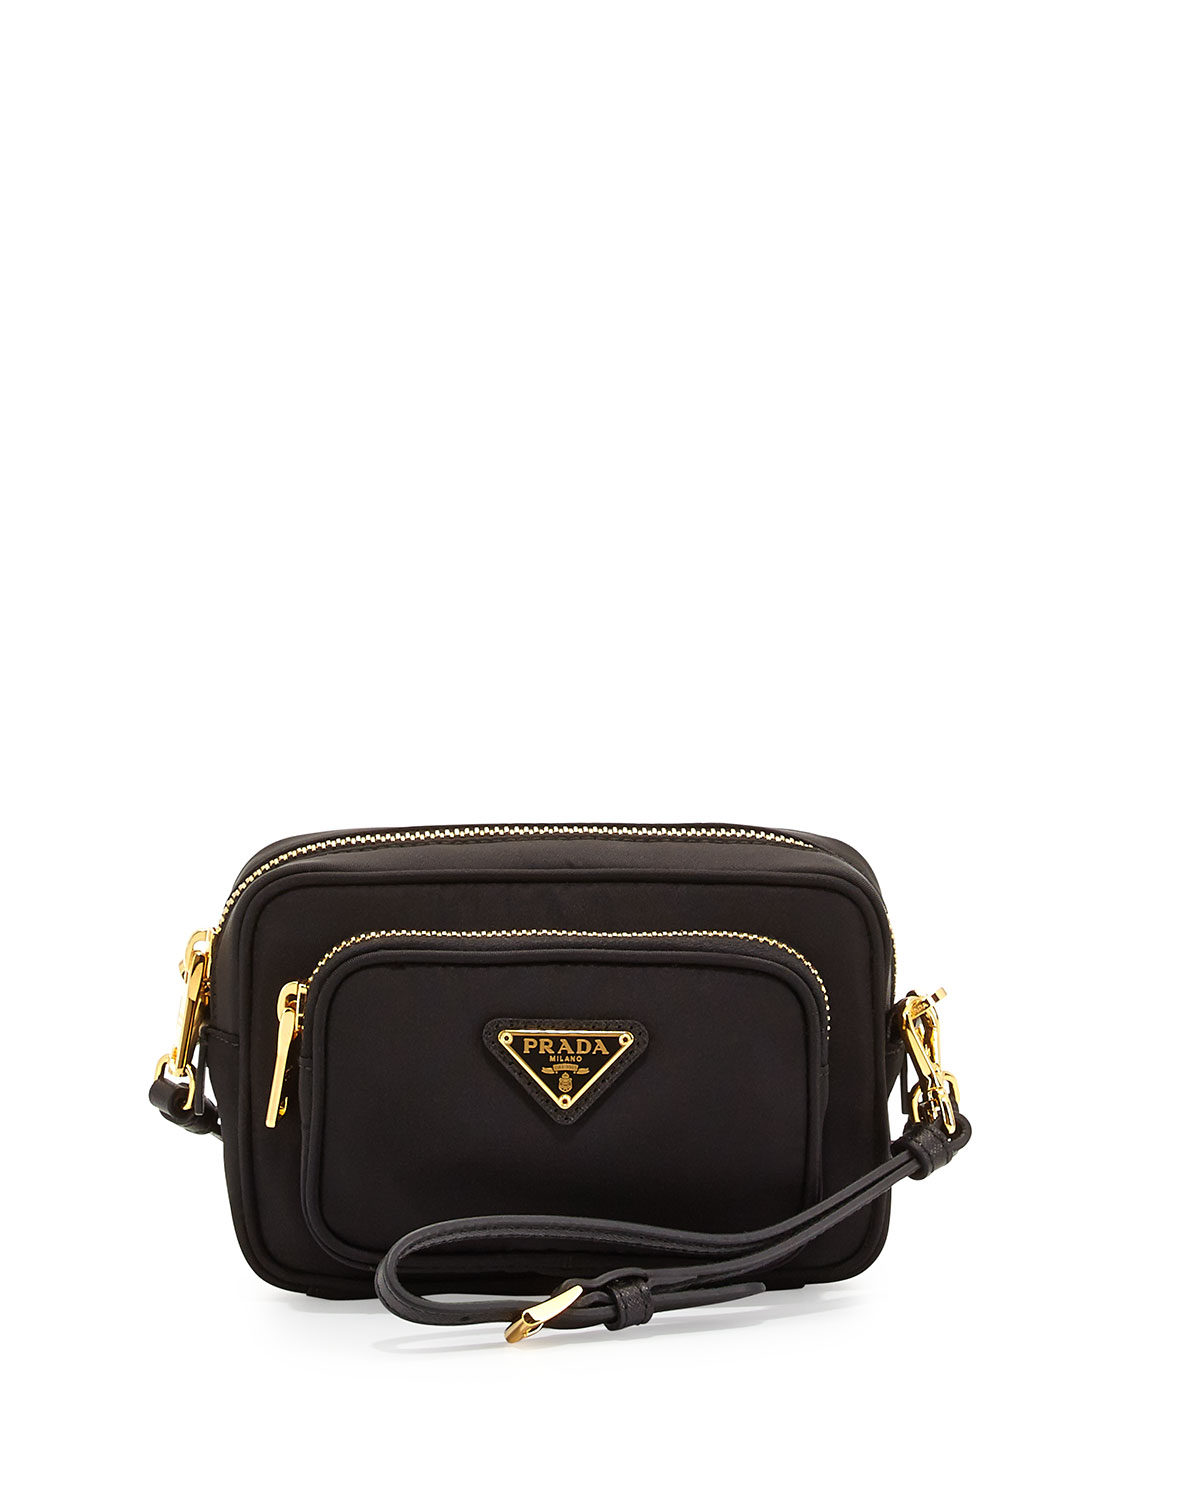 8689a54ee5a48e Prada Tessuto Small Pocket Crossbody Bag, Black (Nero) | Neiman Marcus